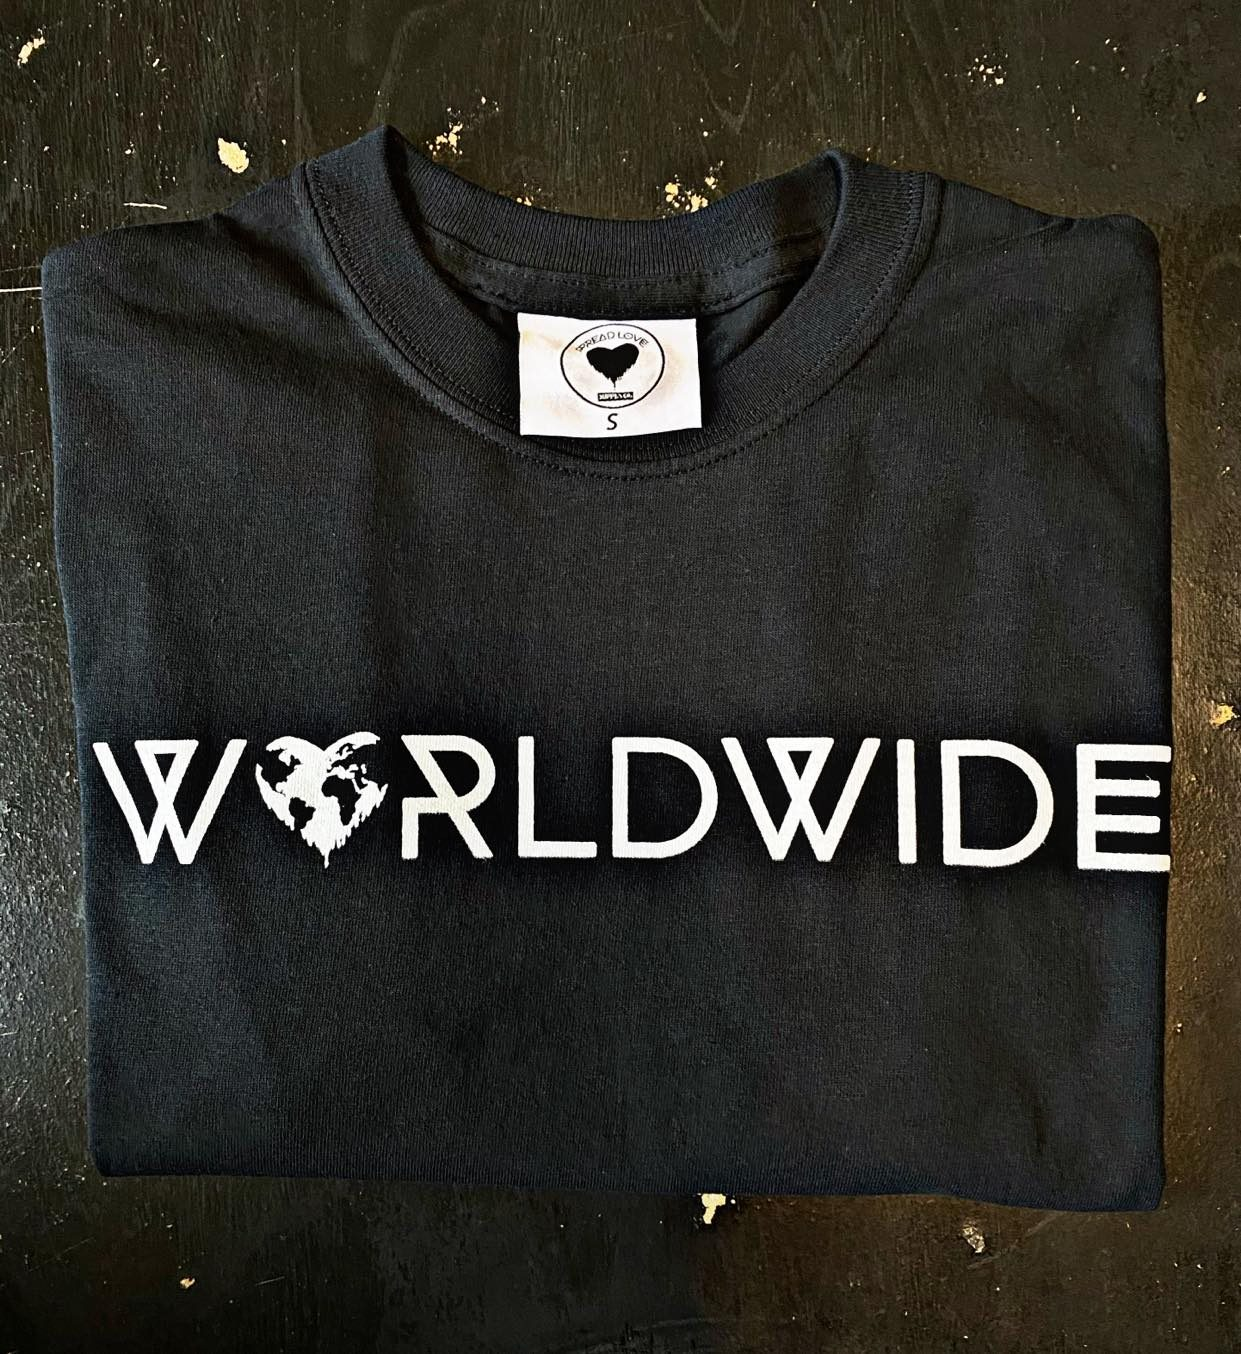 Spread Love Worldwide Tee